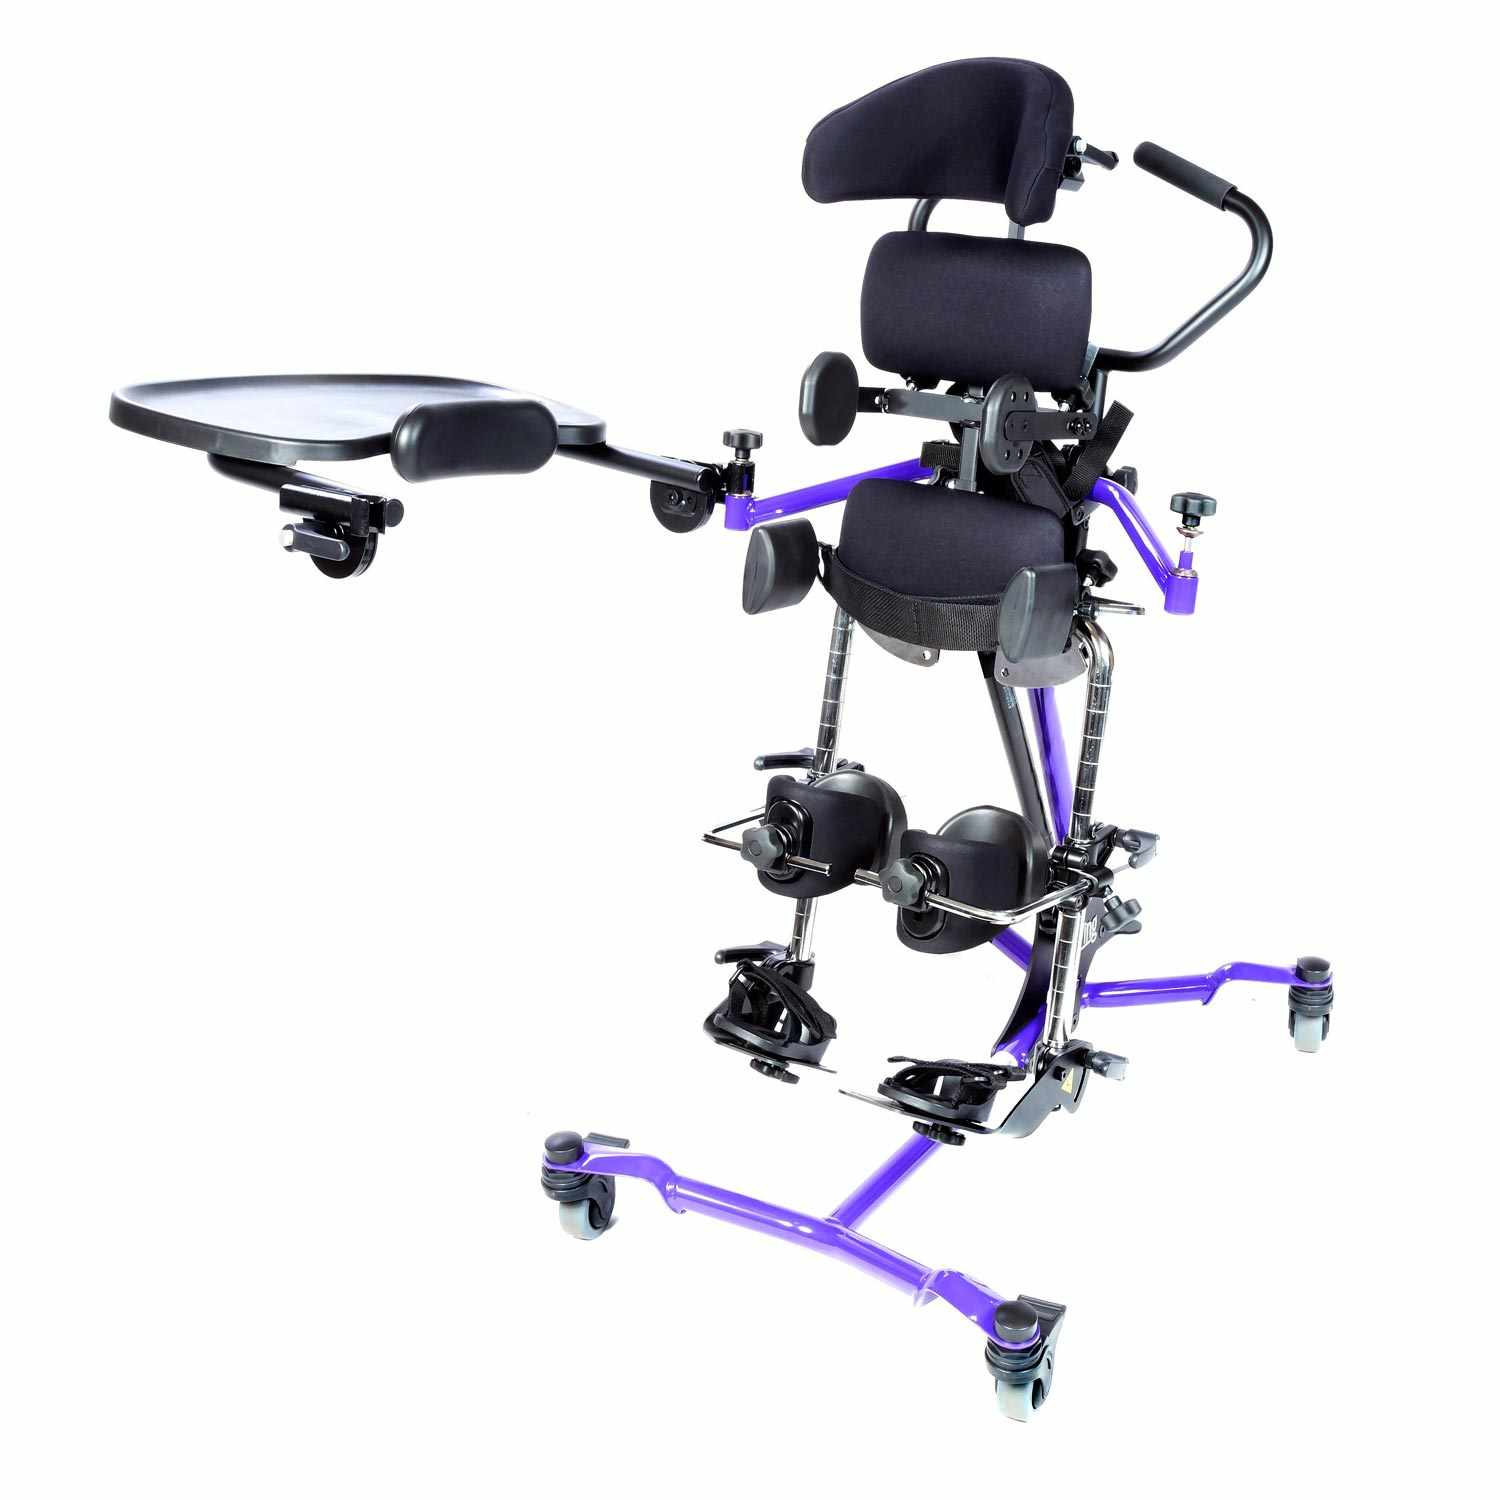 Zing supine stander - Mast with leg abduction